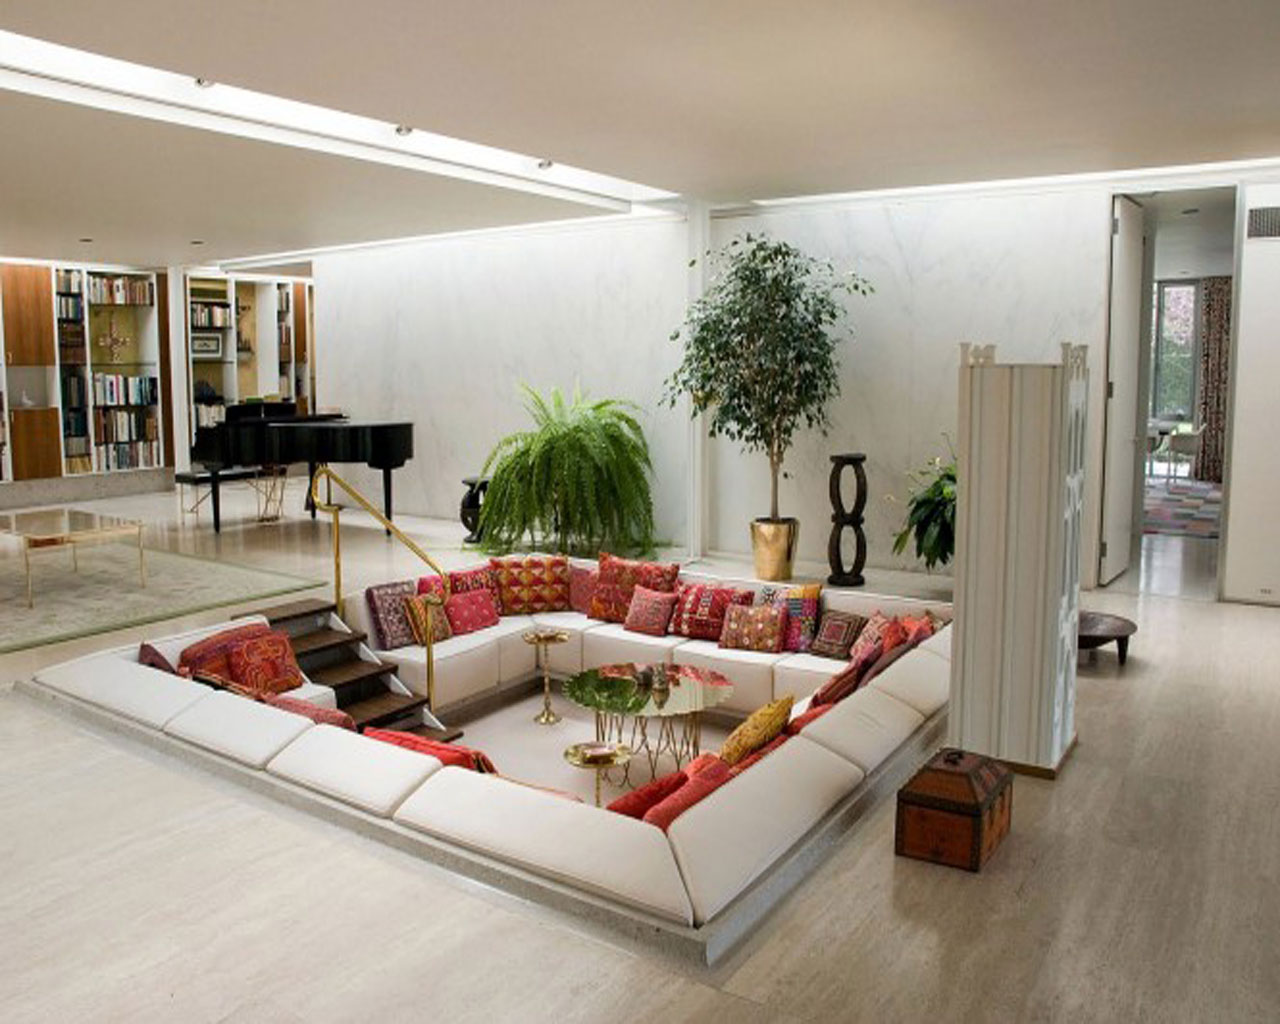 How Can I Apply Feng Shui Principles To Decorate My Living Room?